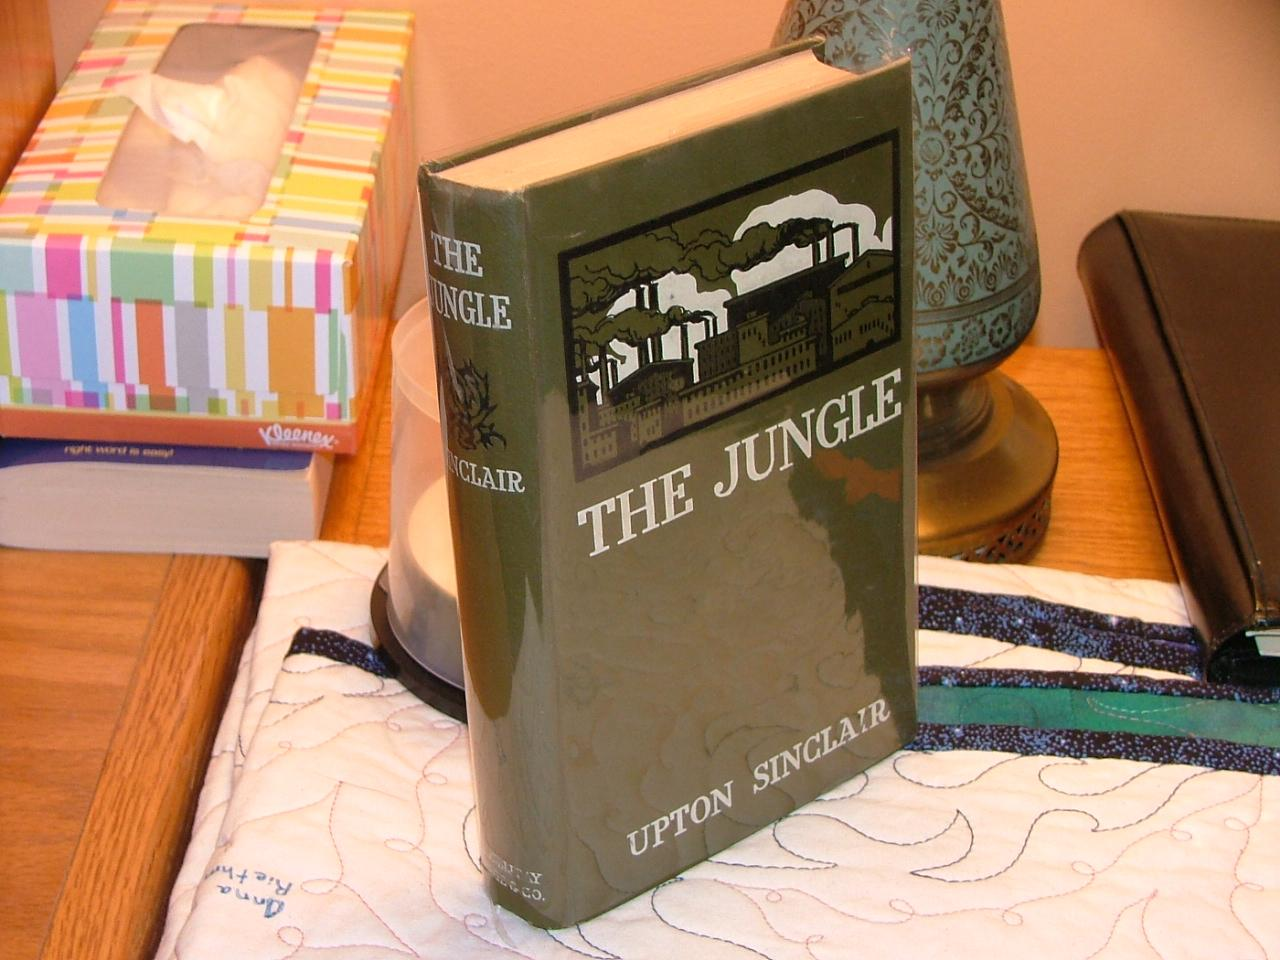 a review of upton sinclairs book the jungle (originally published june 5, 2009) upton sinclair's muckraking novel detailing the conditions of laborers in early 1900s chicago has had a great impact on american thought for more than a centuryafter seeing adam's sharp criticism of this book i had to read it for myself.